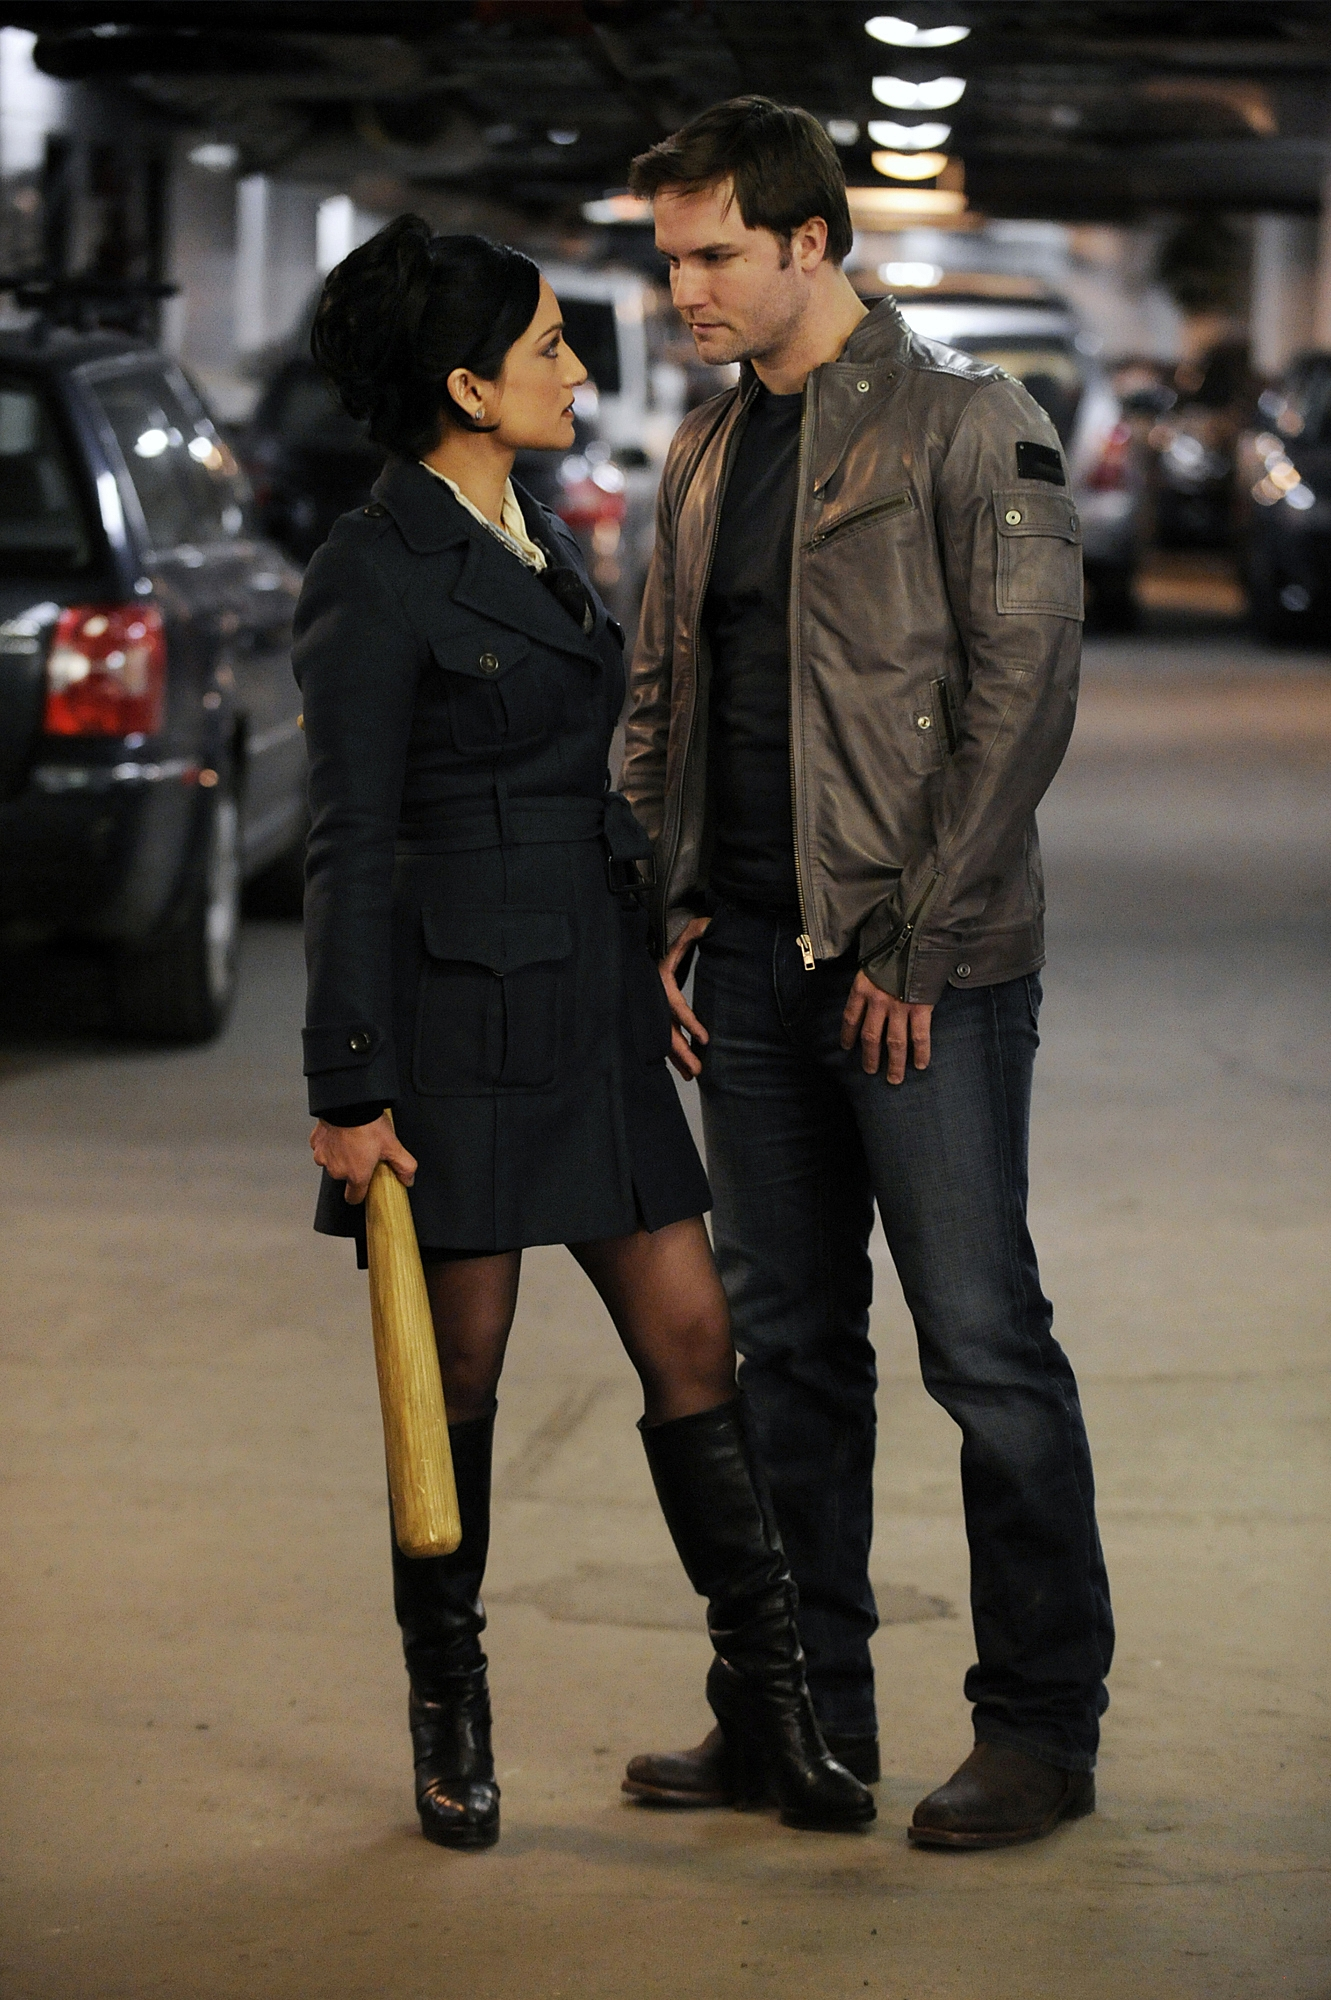 10 Best Dressed TV Stars And Shows - Kalinda Sharma (Archie Panjabi) - The Good Wife